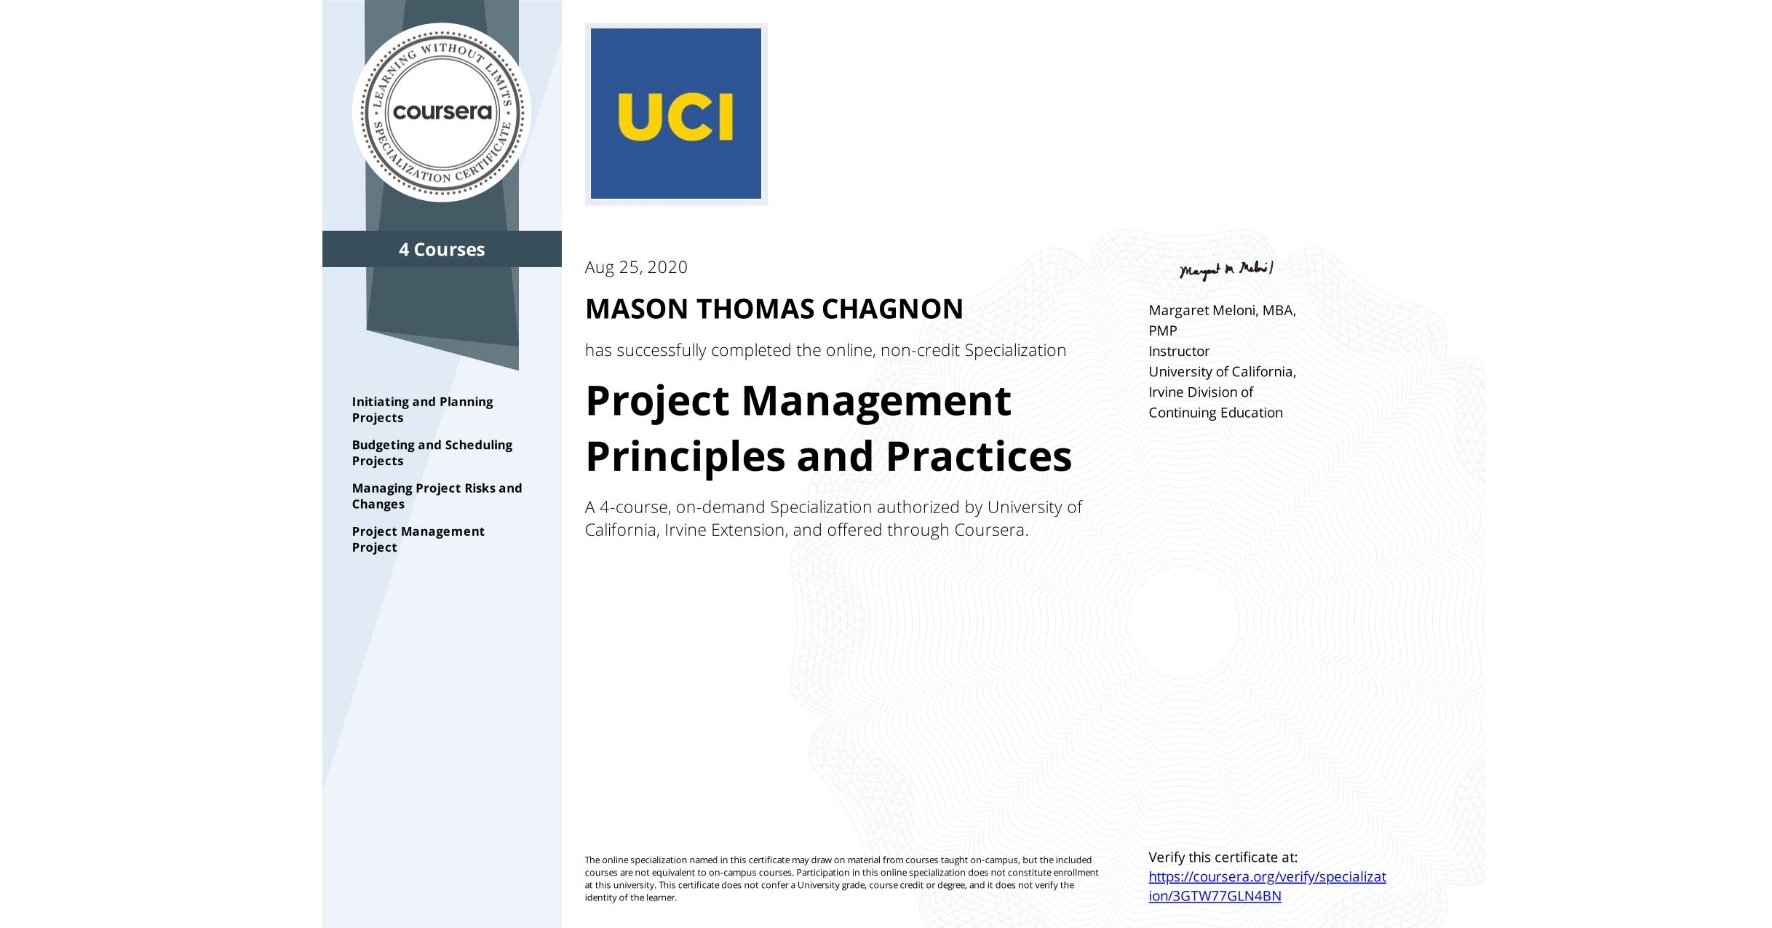 View certificate for MASON THOMAS  CHAGNON, Project Management Principles and Practices, offered through Coursera. A 4-course, on-demand Specialization authorized by University of California, Irvine Extension, and offered through Coursera.